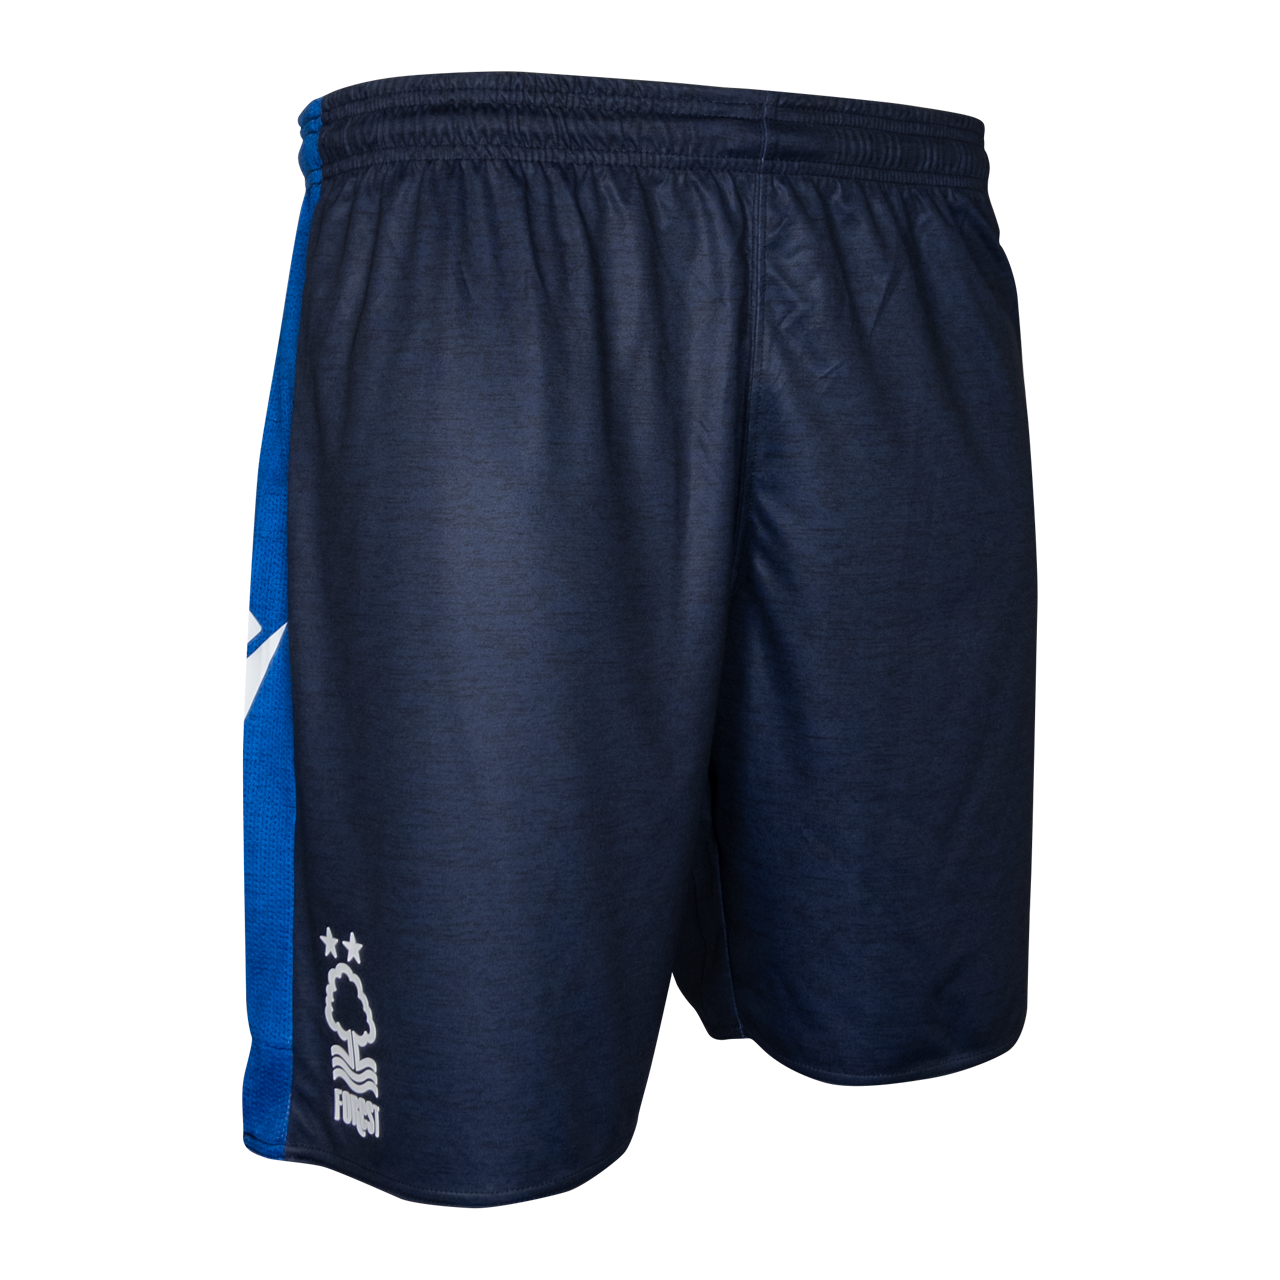 NFFC Mens Away Shorts 2019/20